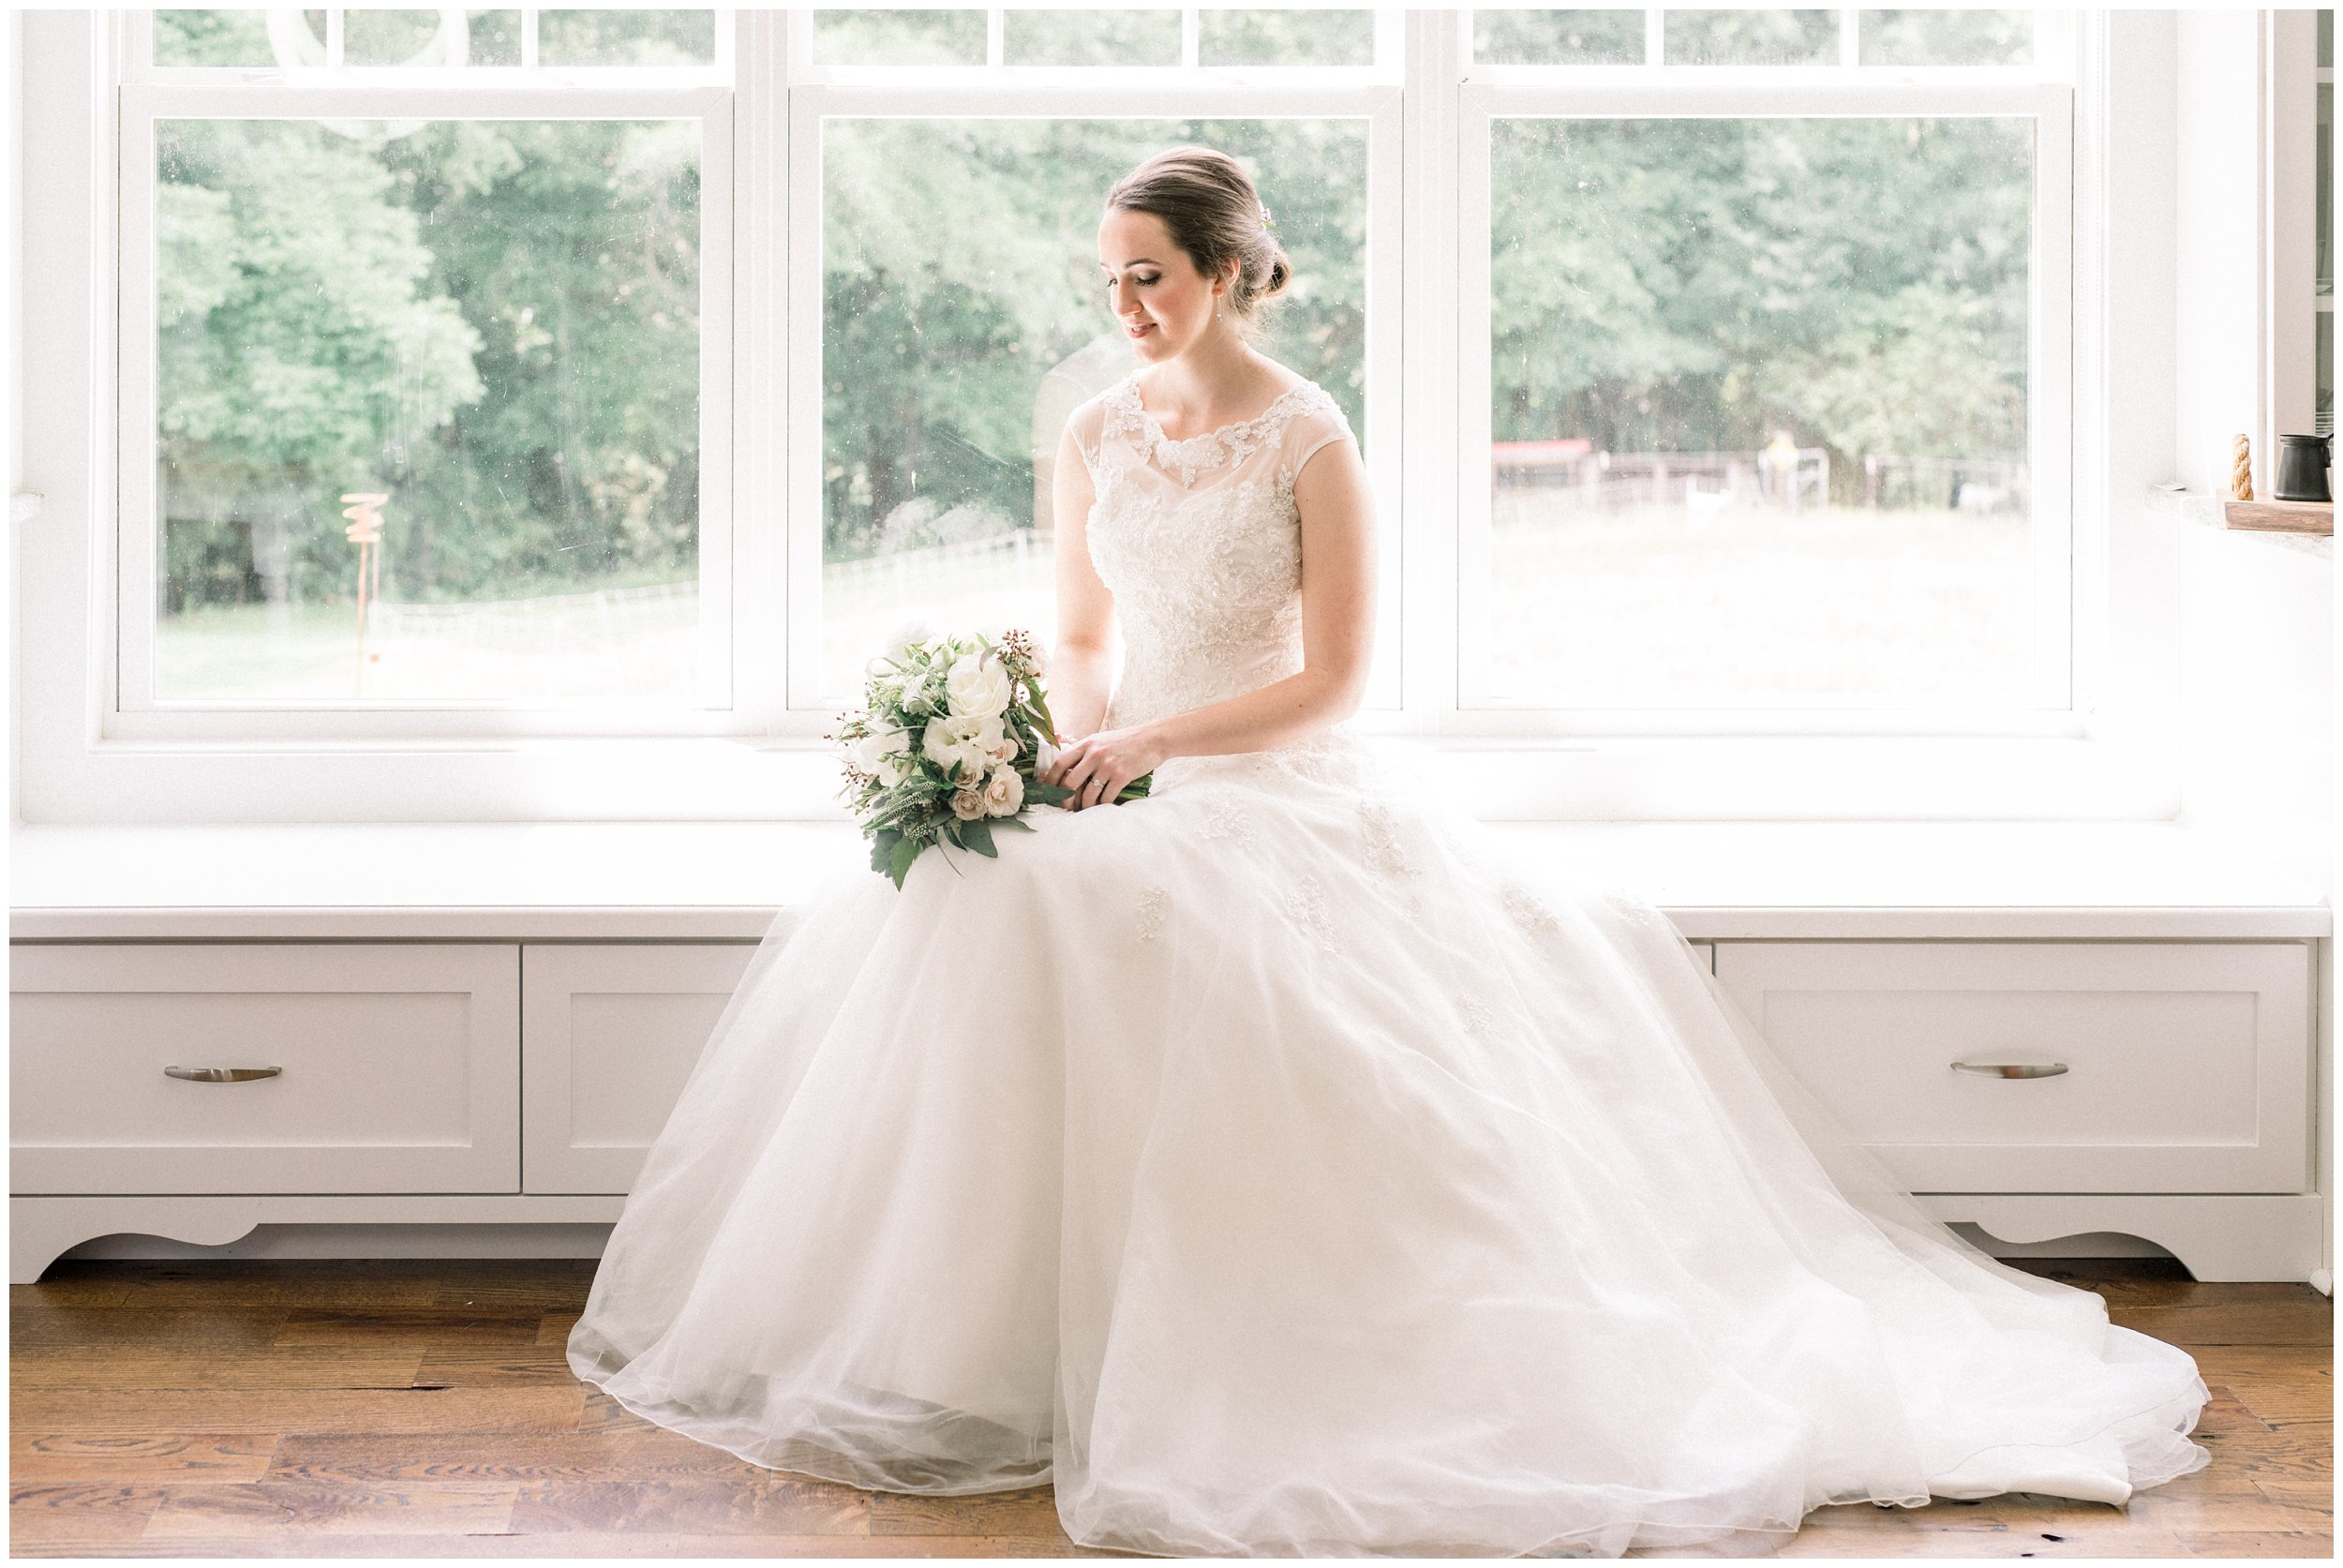 lovely bridal portrait next to window rock hill wedding